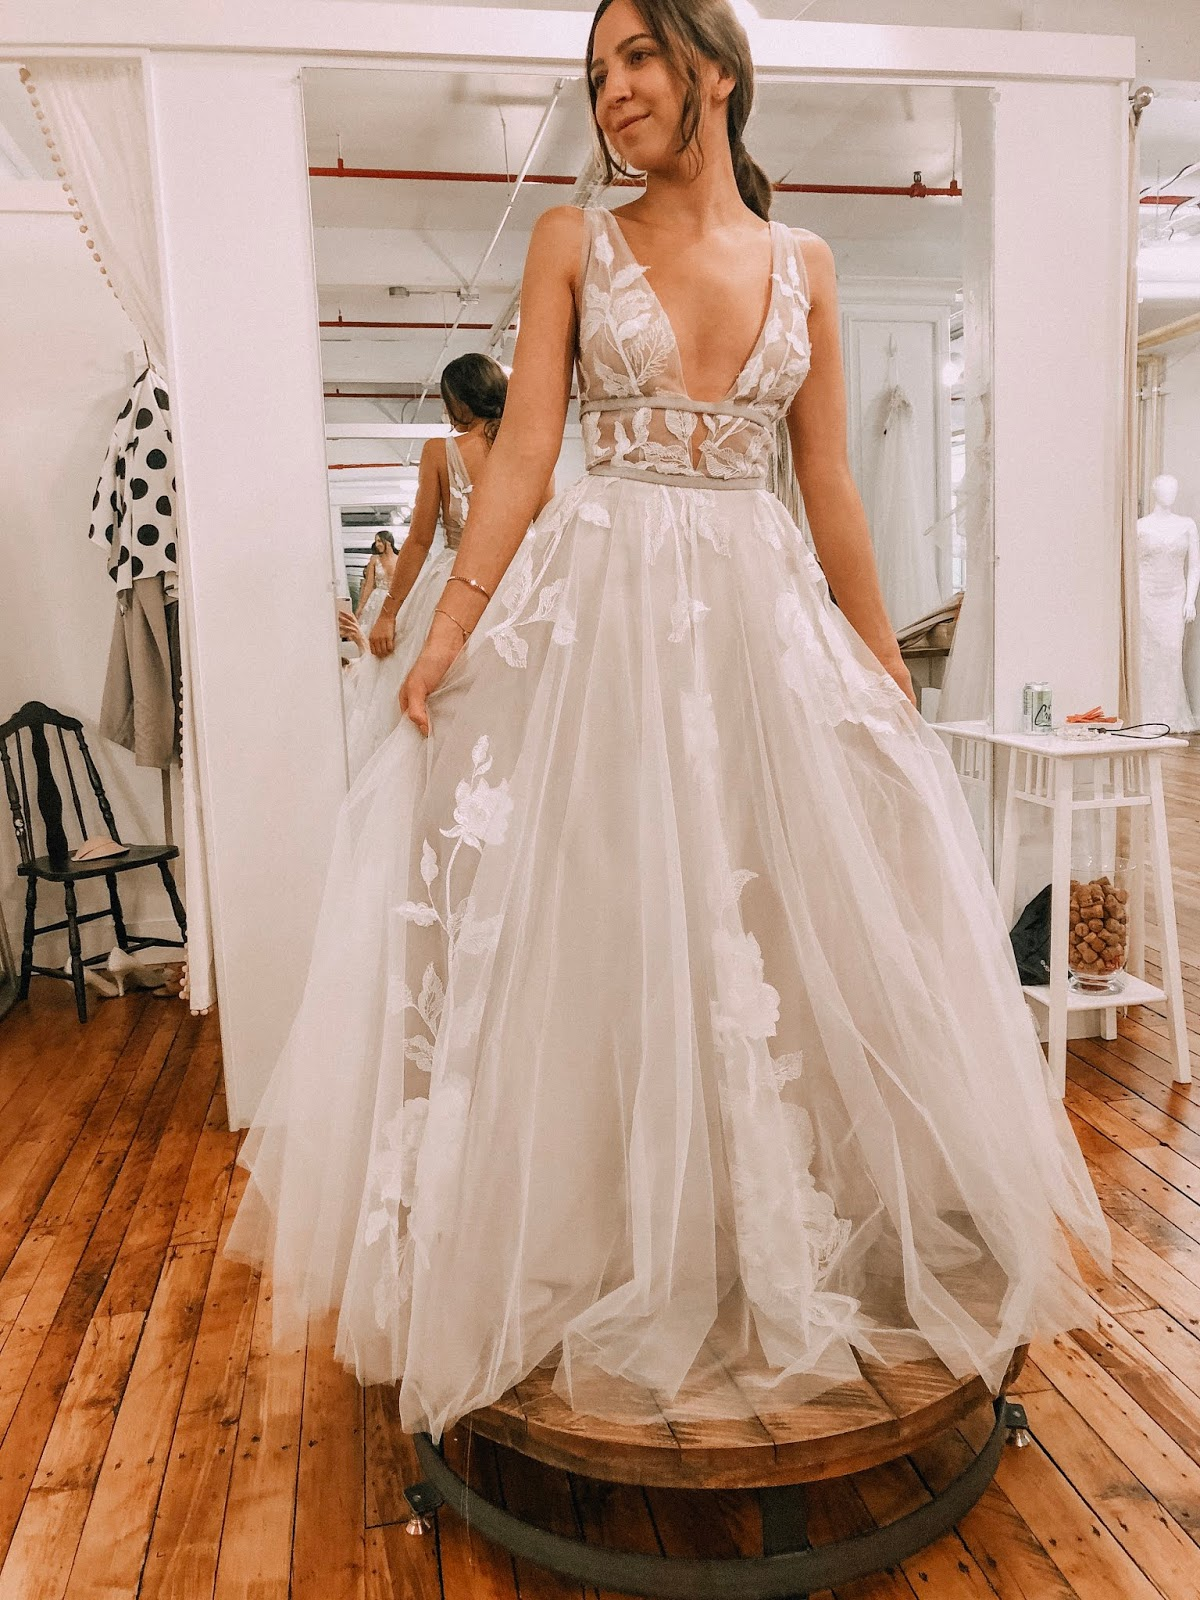 The Perfect Wedding.How To Choose The Perfect Wedding Dress Emelyne